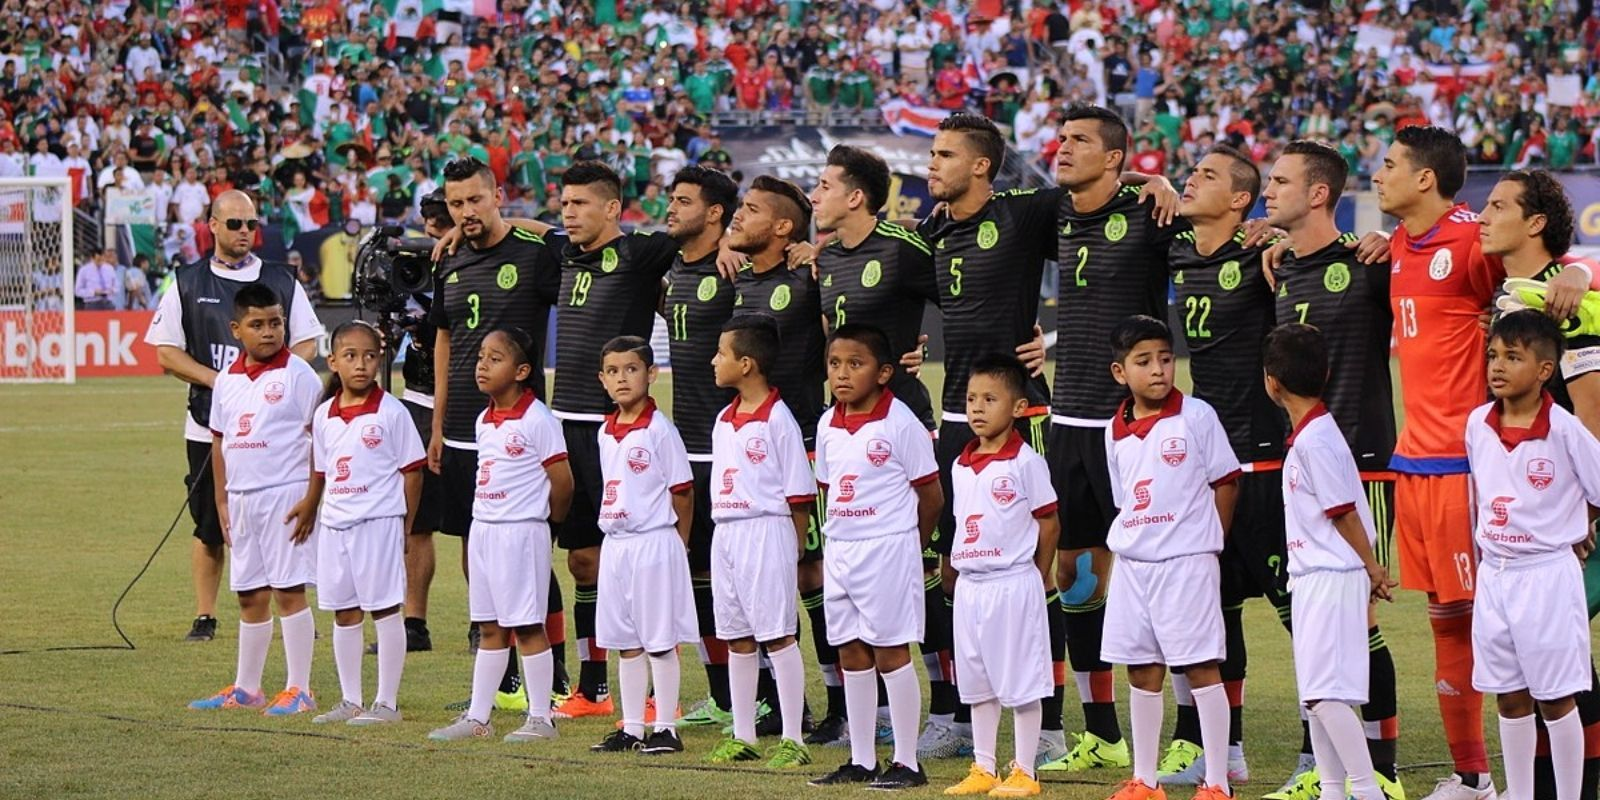 Mexico fans BANNED from World Cup qualifiers for 'homophobia' — tournament will be in Qatar, where homosexuality is ILLEGAL